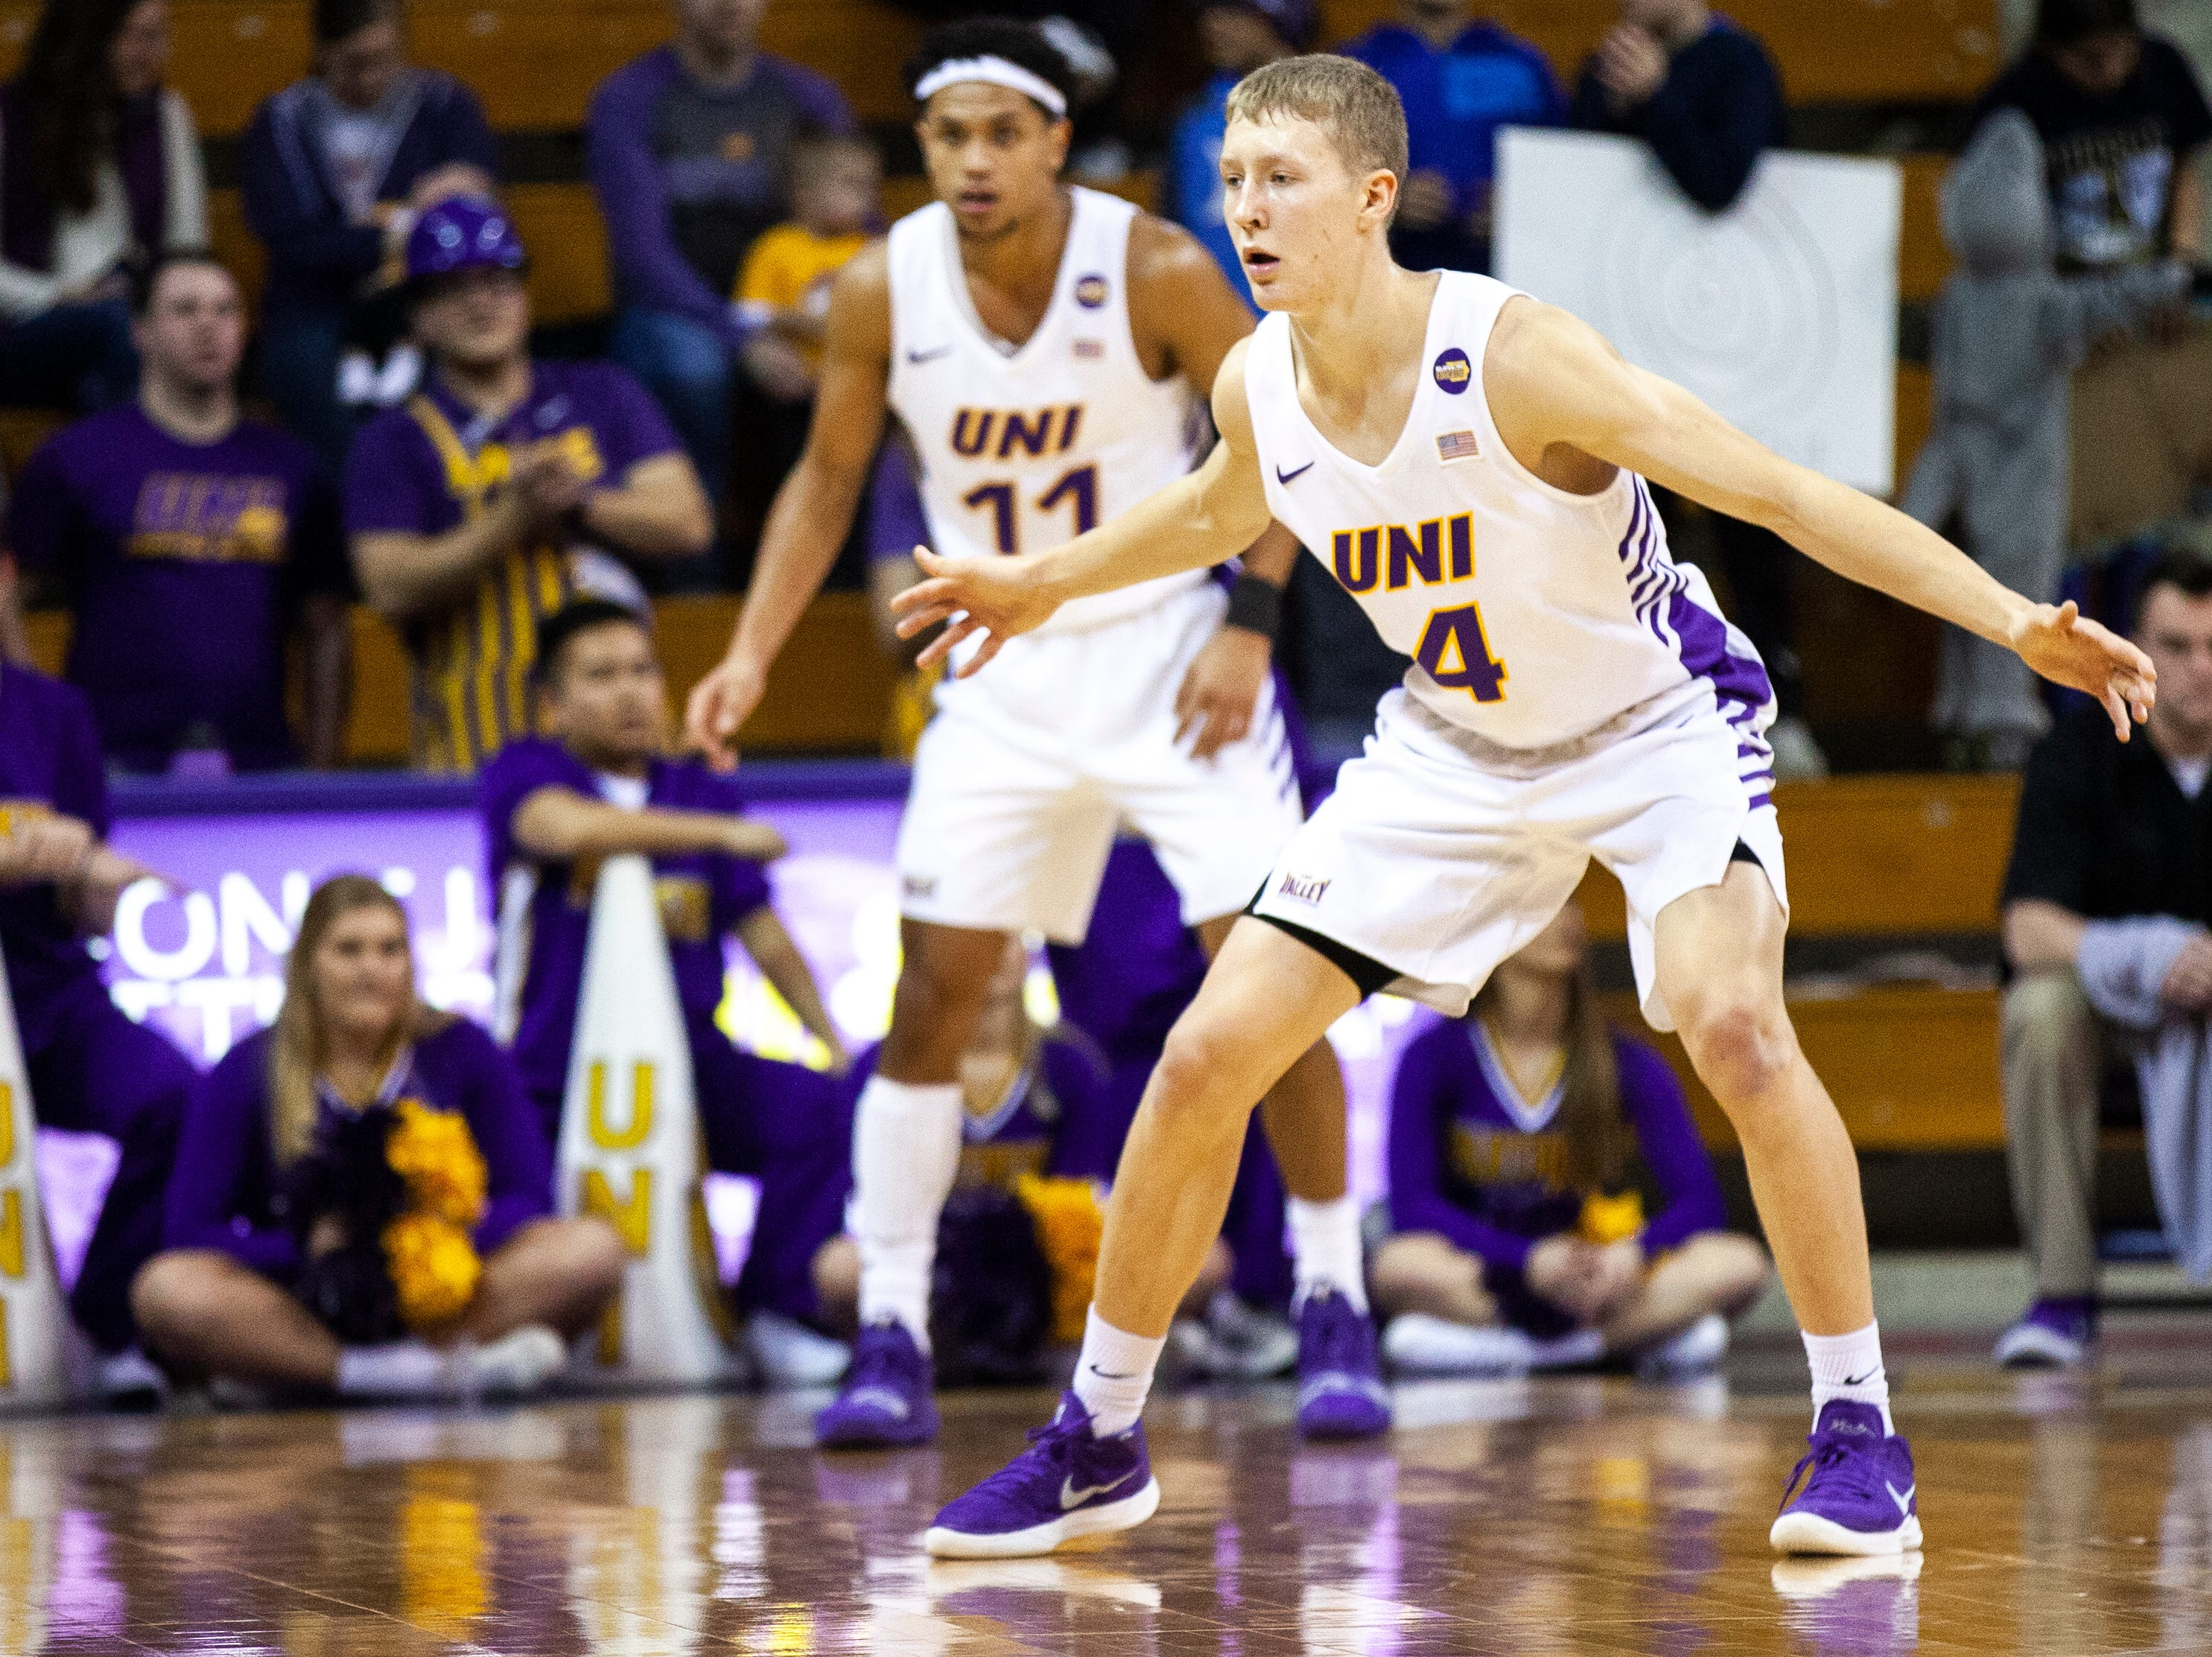 Northern Iowa guard A.J. Green settles in on defense during a NCAA Missouri Valley Conference men's basketball game on Saturday, Jan. 5, 2019, at the McLeod Center in Cedar Falls, Iowa.